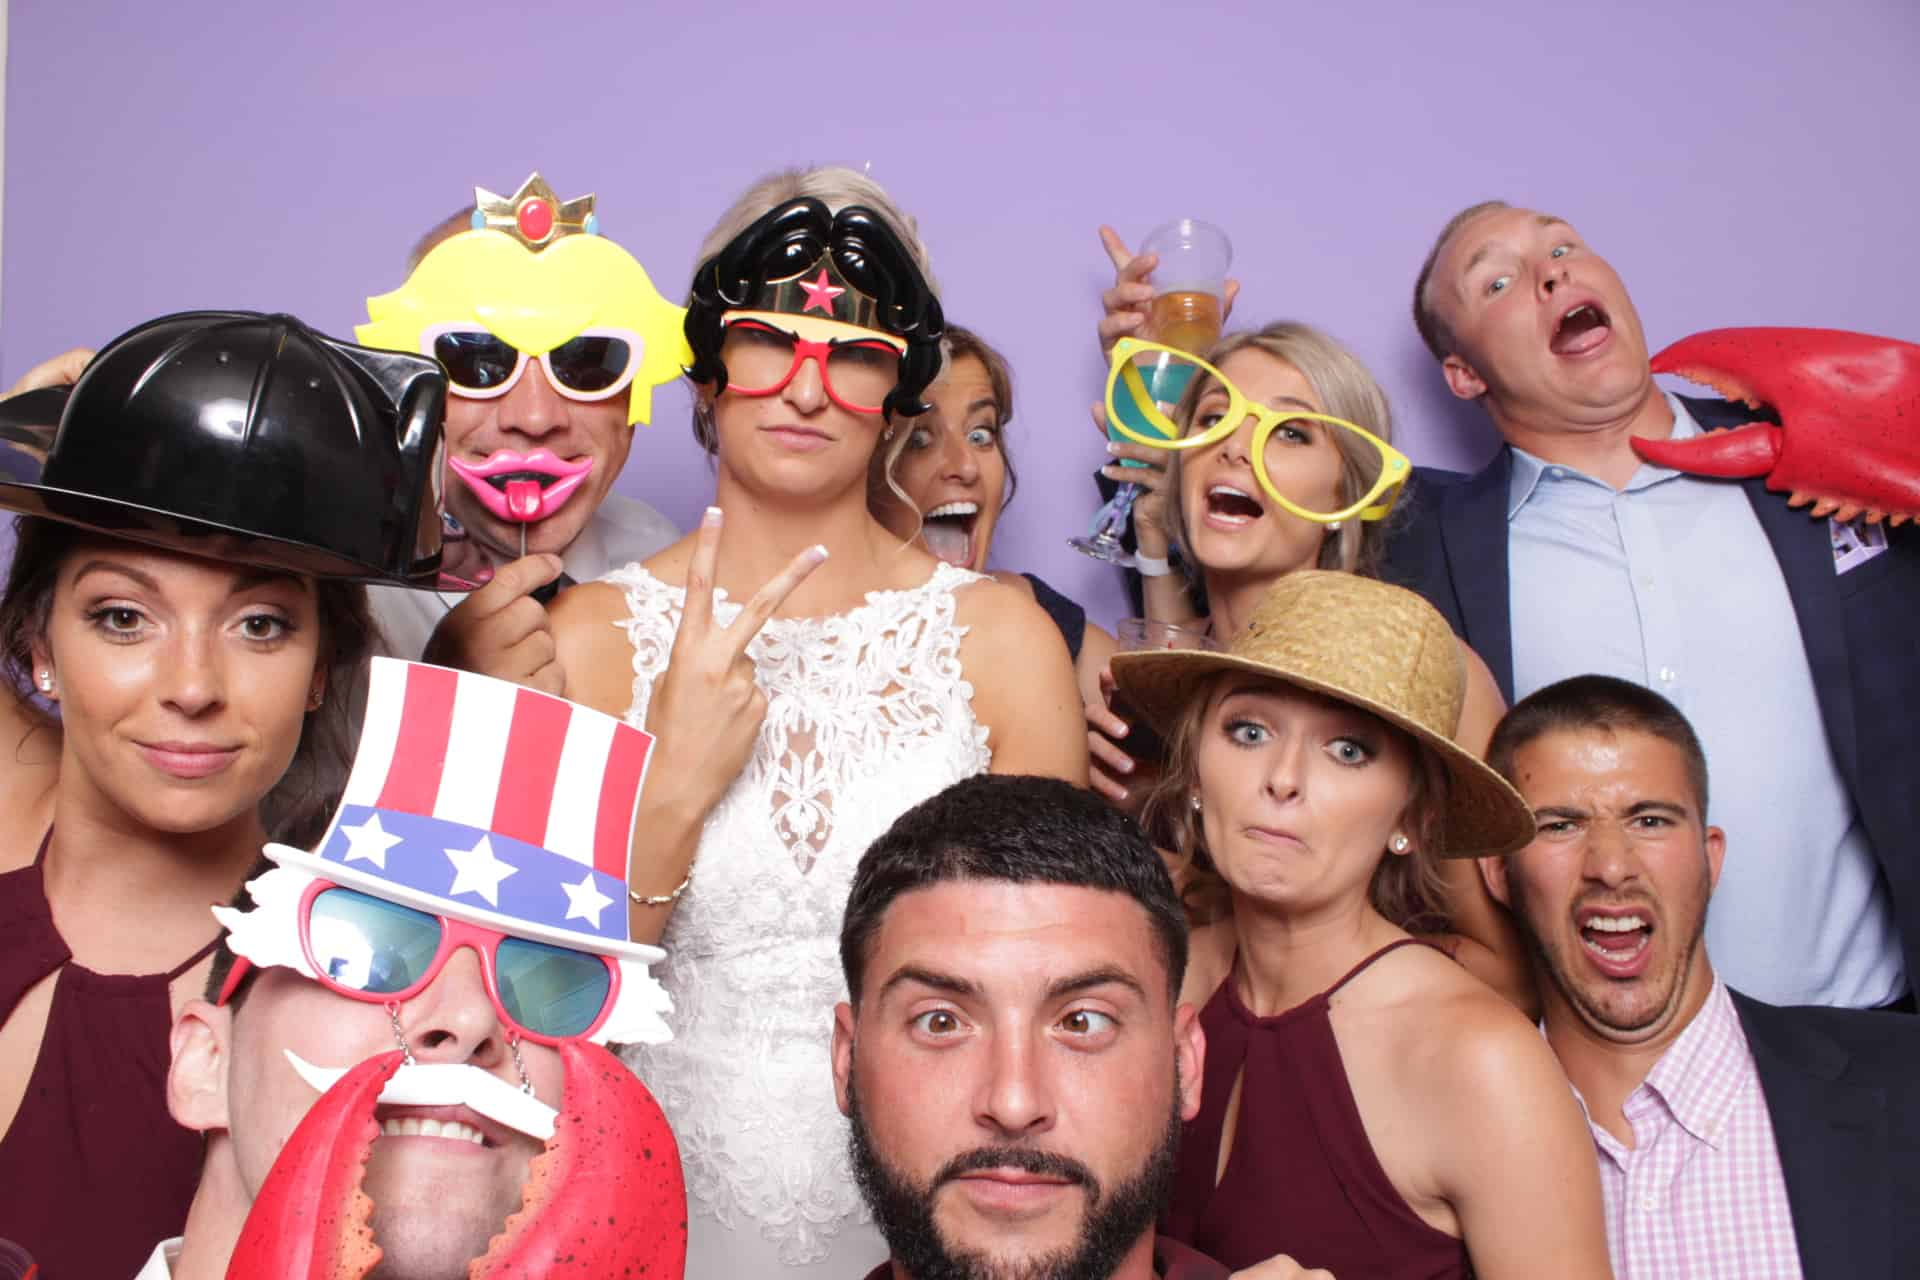 maryland wedding photo booth rental